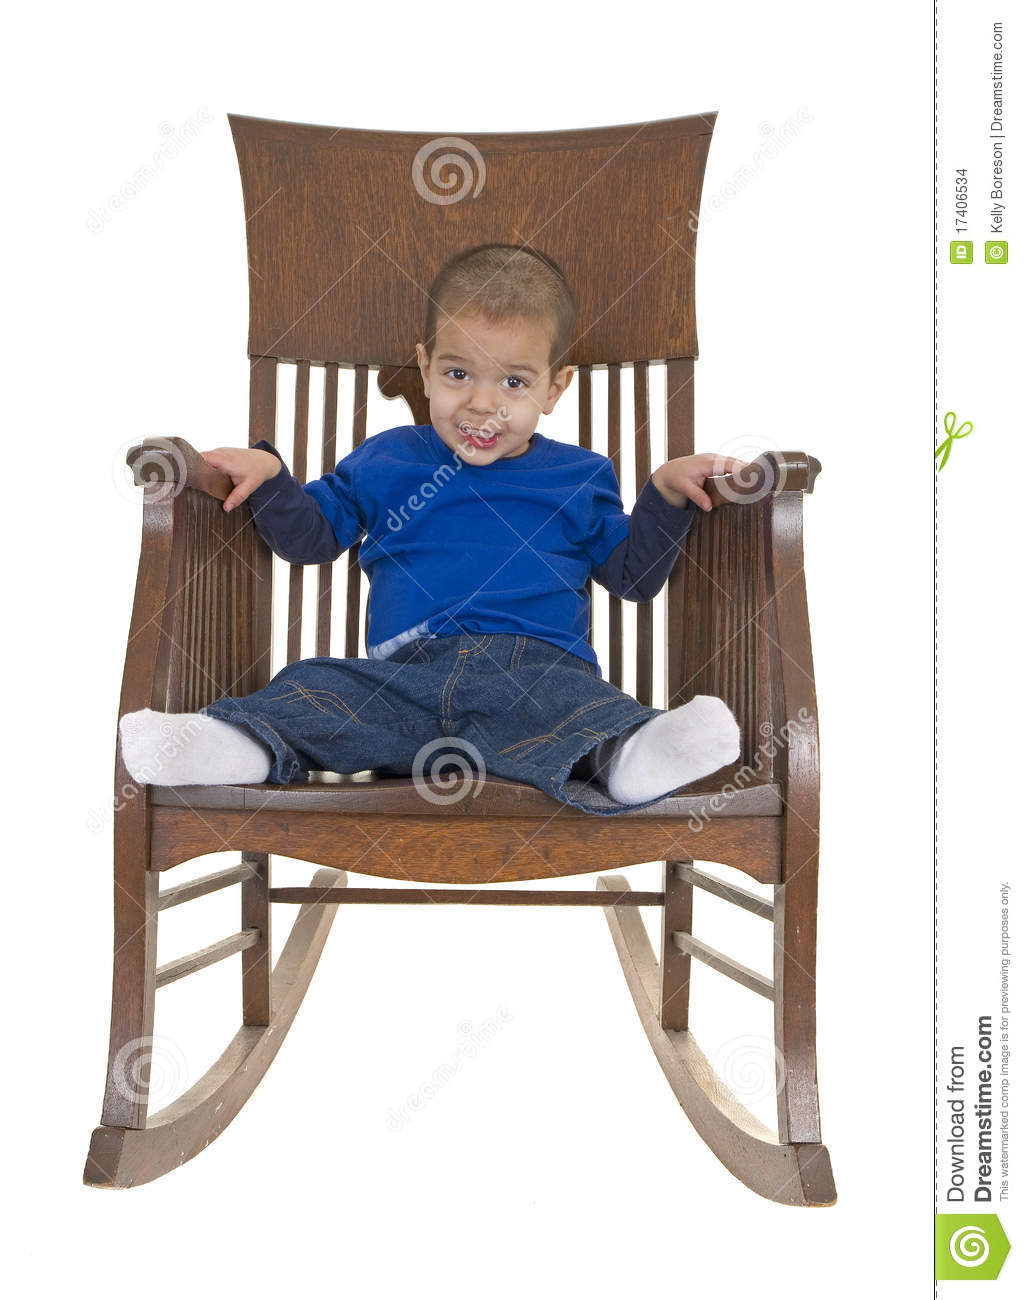 little boy chairs stool chair vintage cute on rocking stock images image